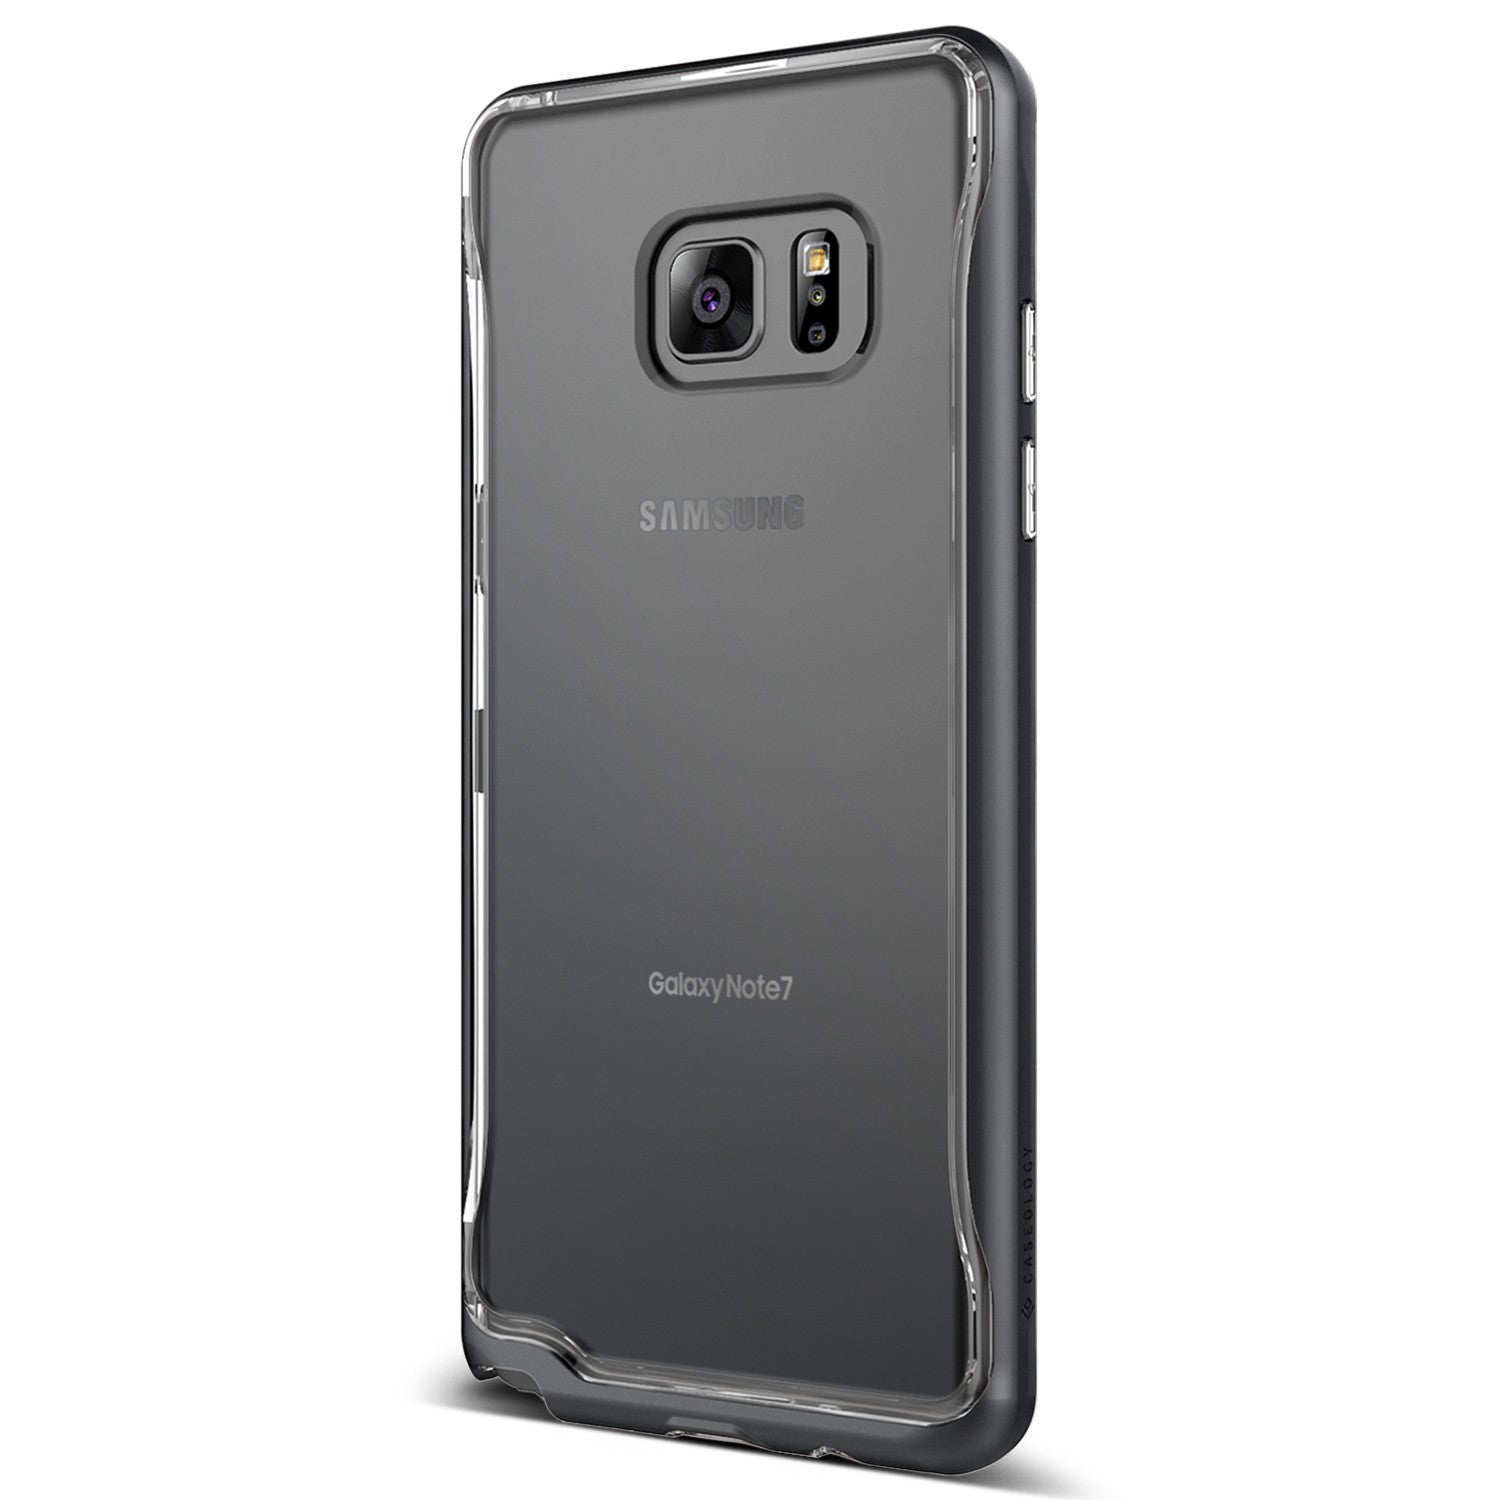 Galaxy Note 7 Case Skyfall